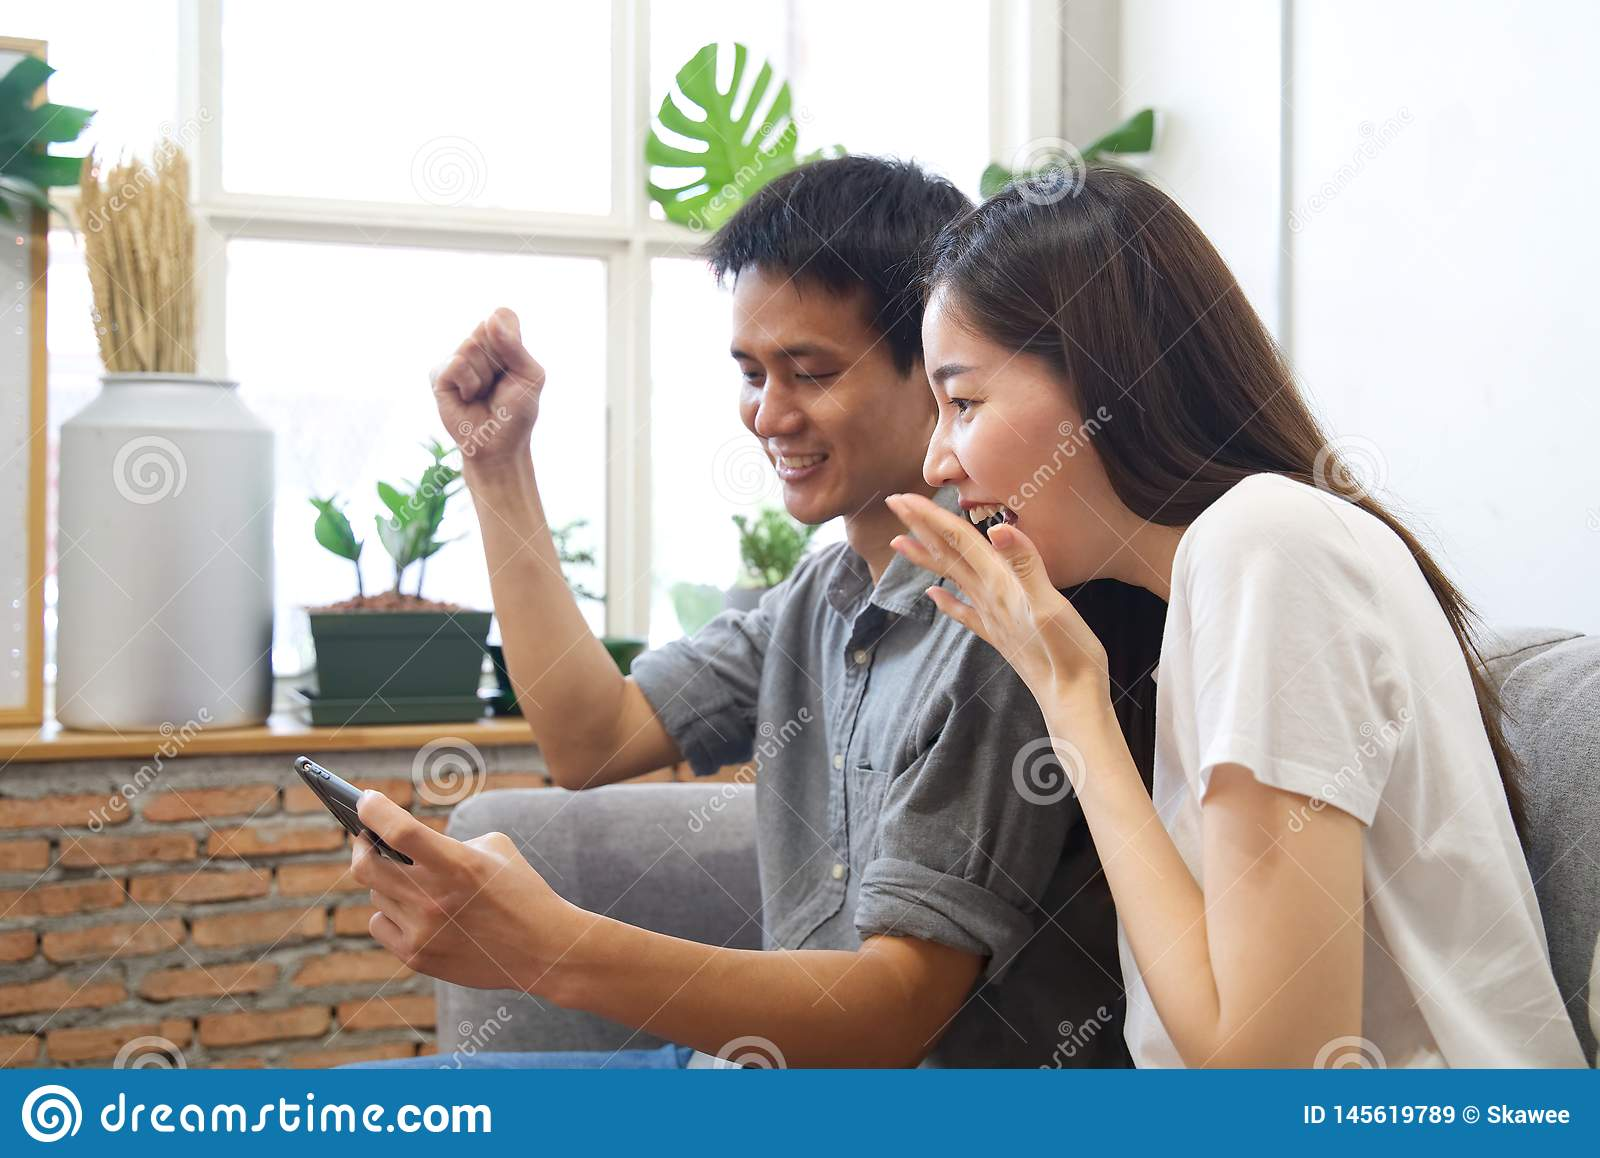 Young couple sitting on sofa are watching mobile phone and feeling surprise&happy.